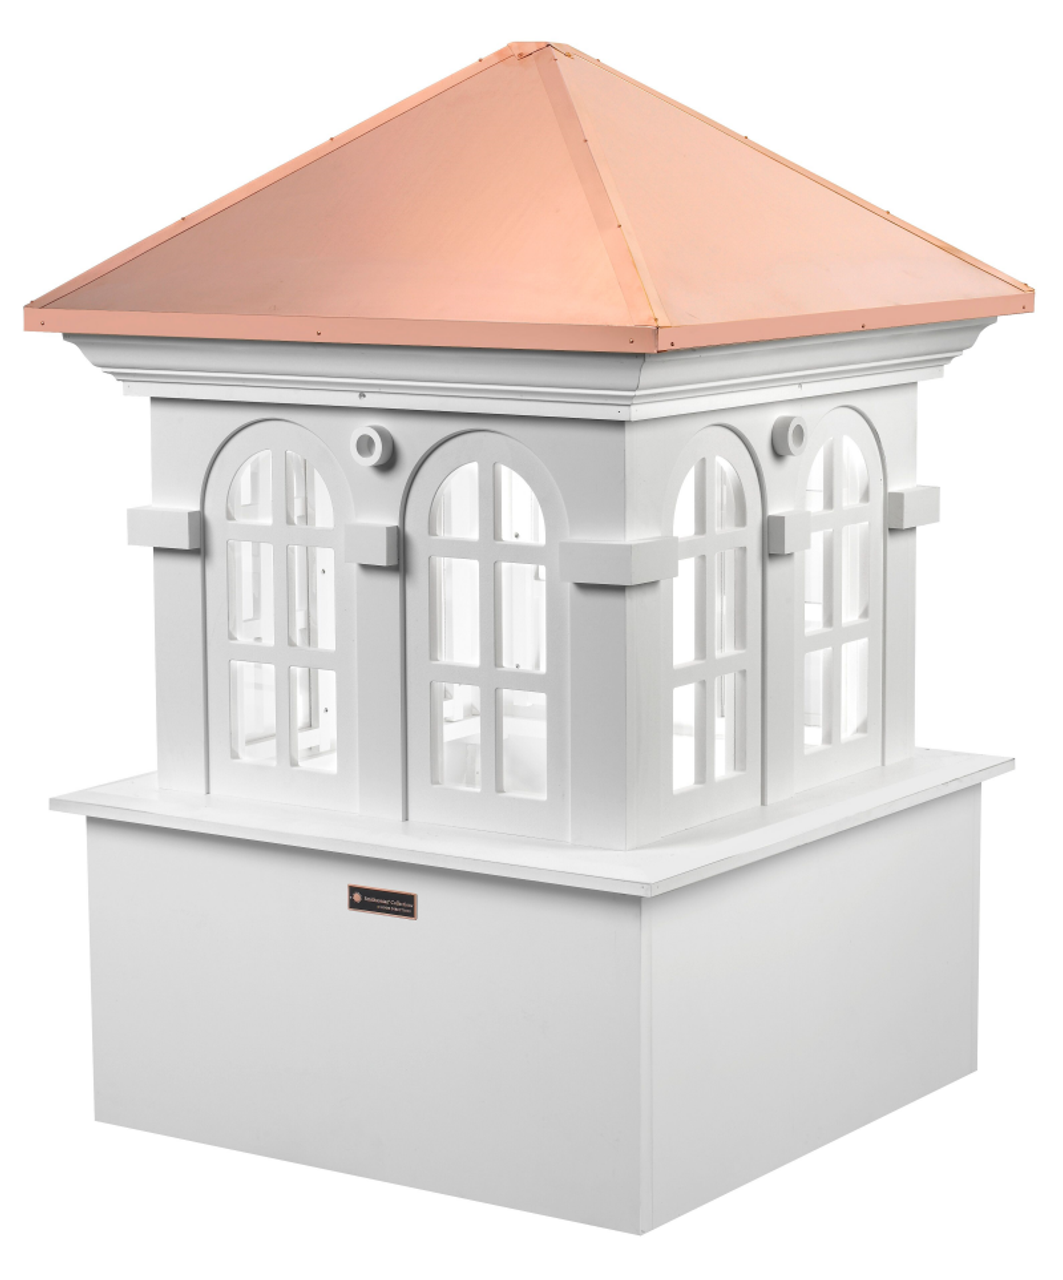 Good Directions Smithsonian Vinyl Chesapeake Cupola - 48in. square x 70in. high